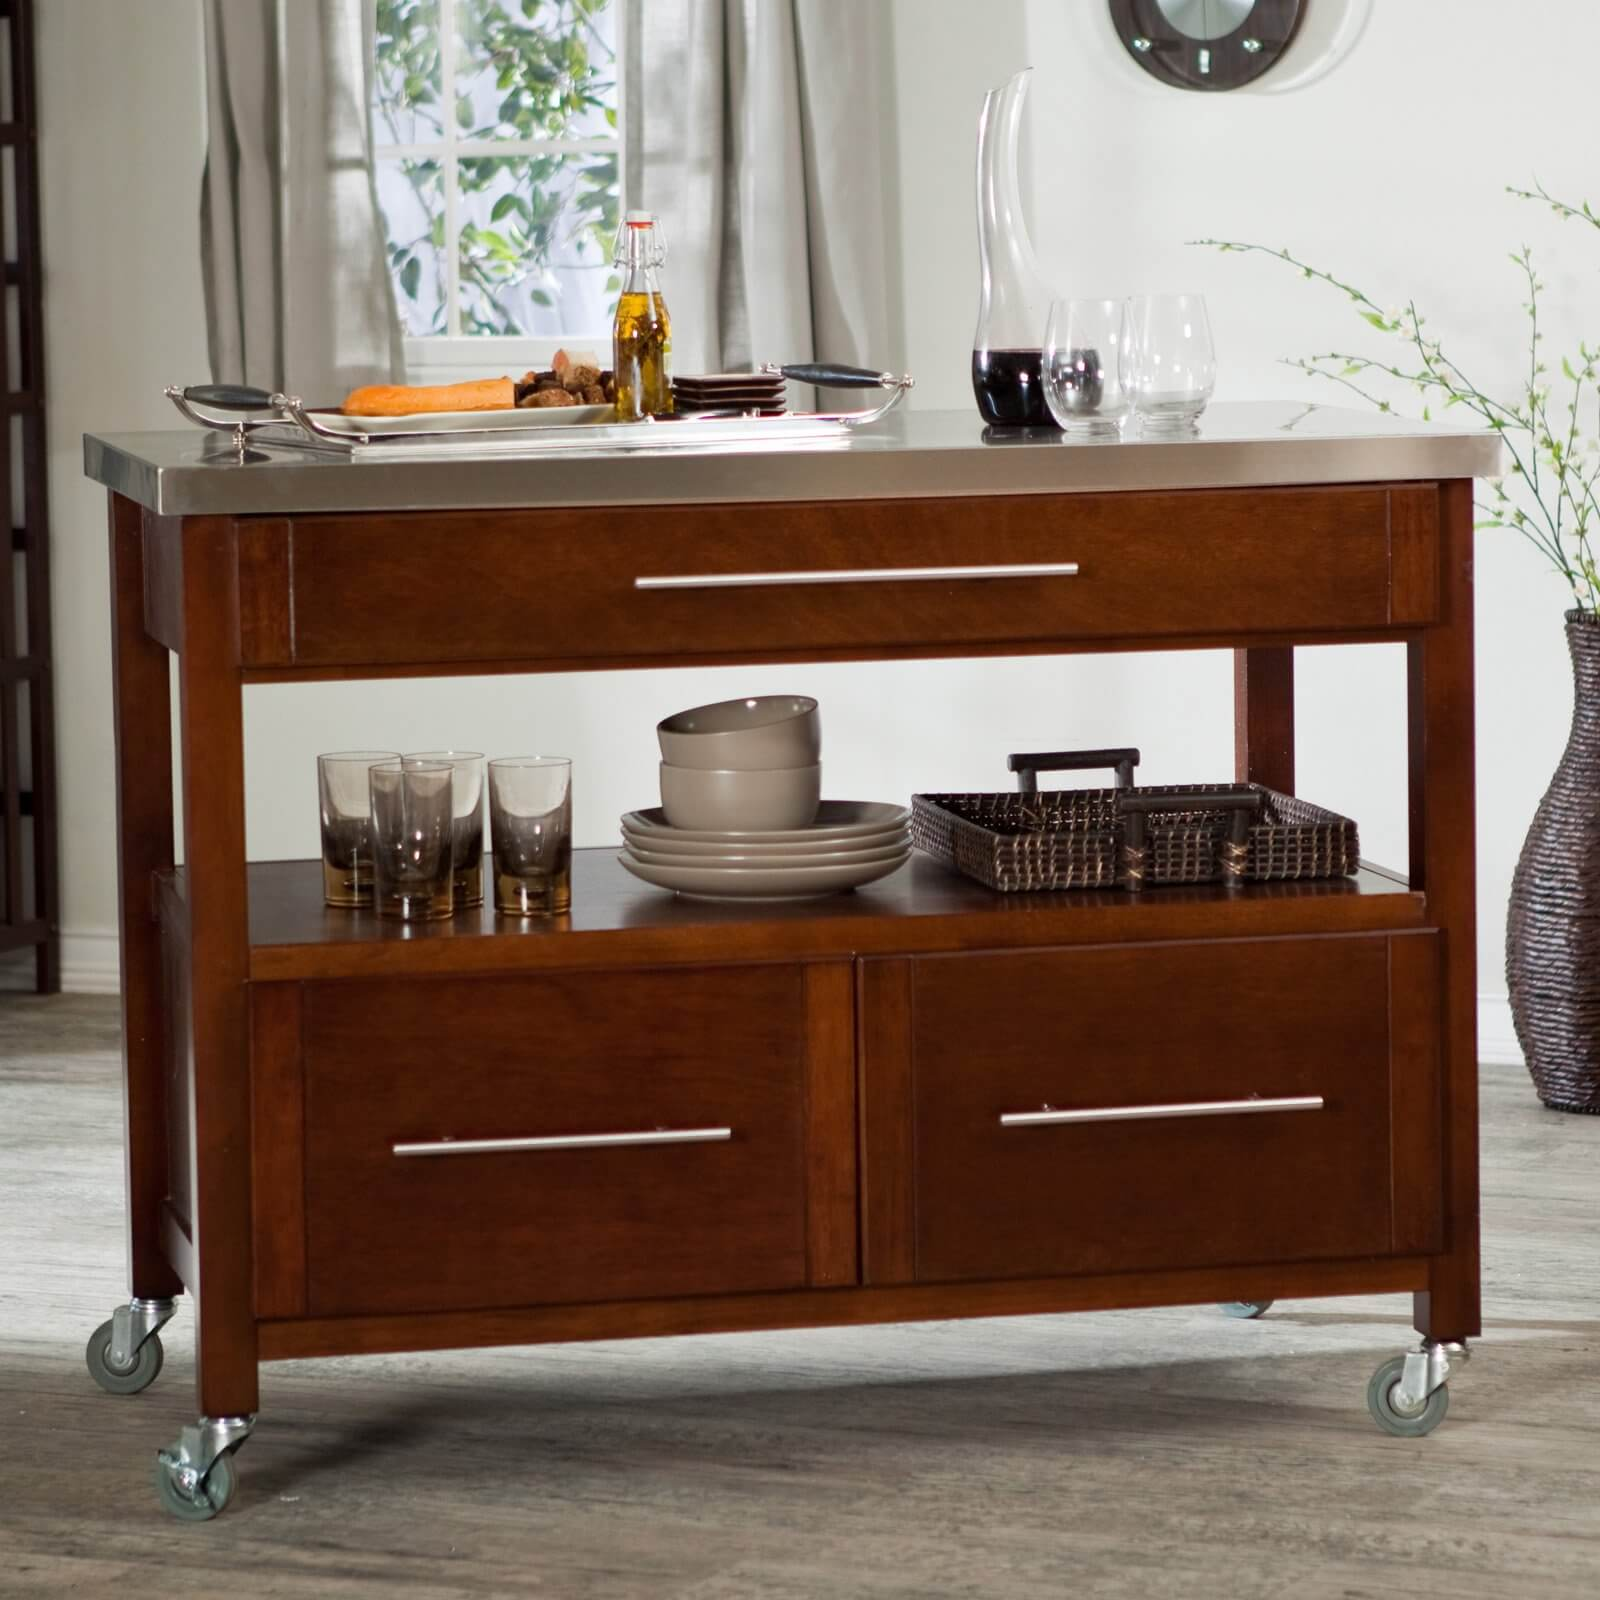 10 Types Of Small Kitchen Islands On Wheels